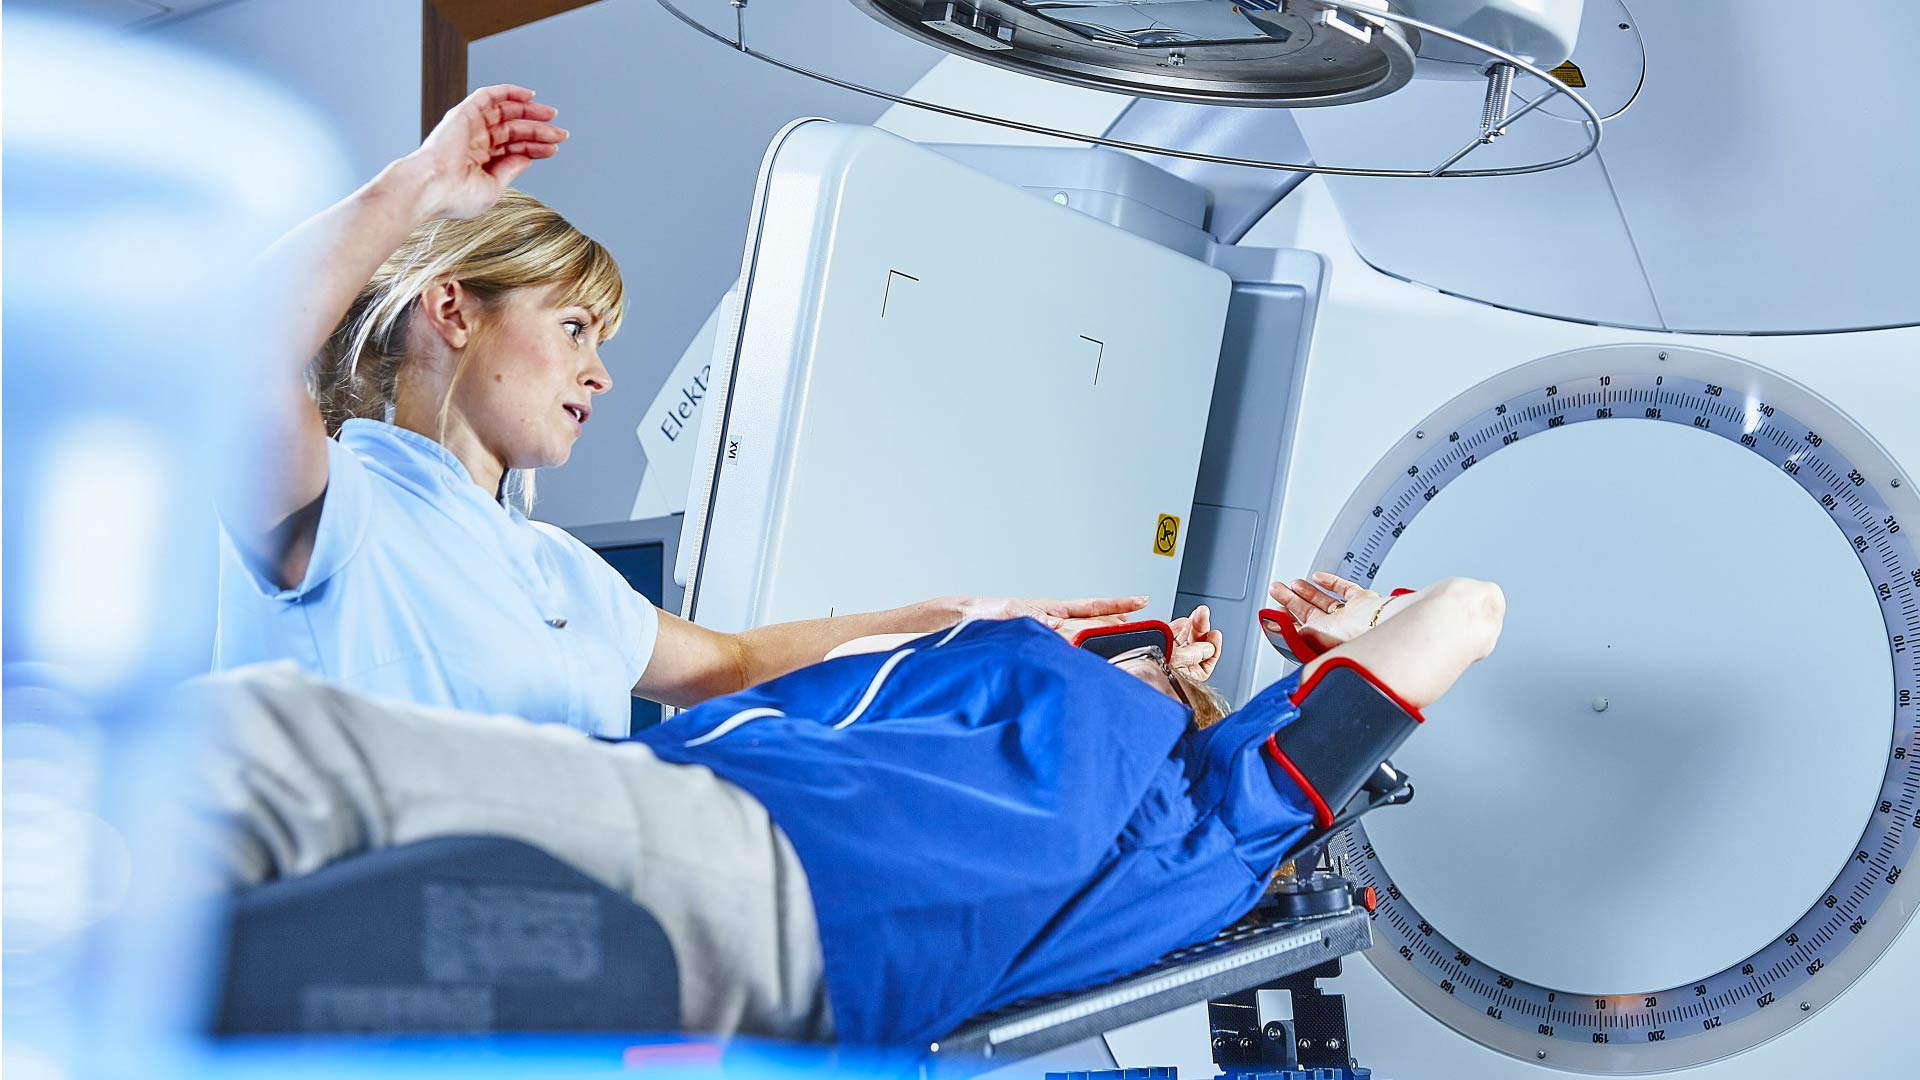 Radiotherapy Treatment: The Cost, Types And Side Effects